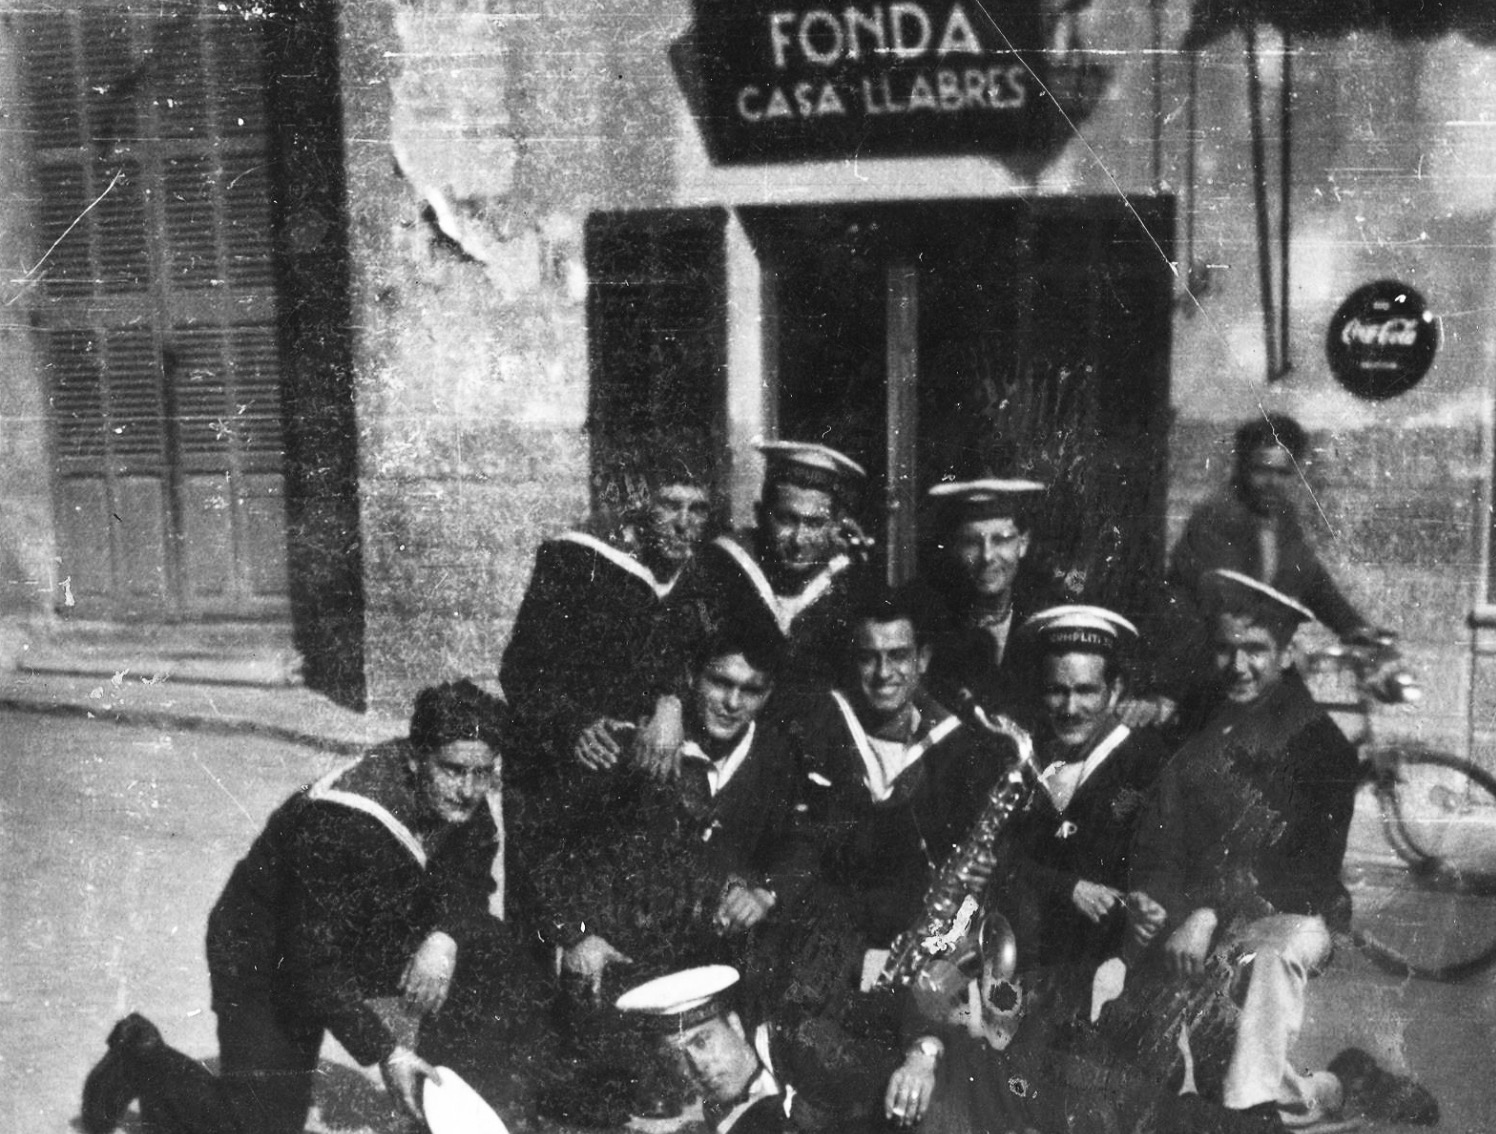 Musicians in the Fonda Llabres